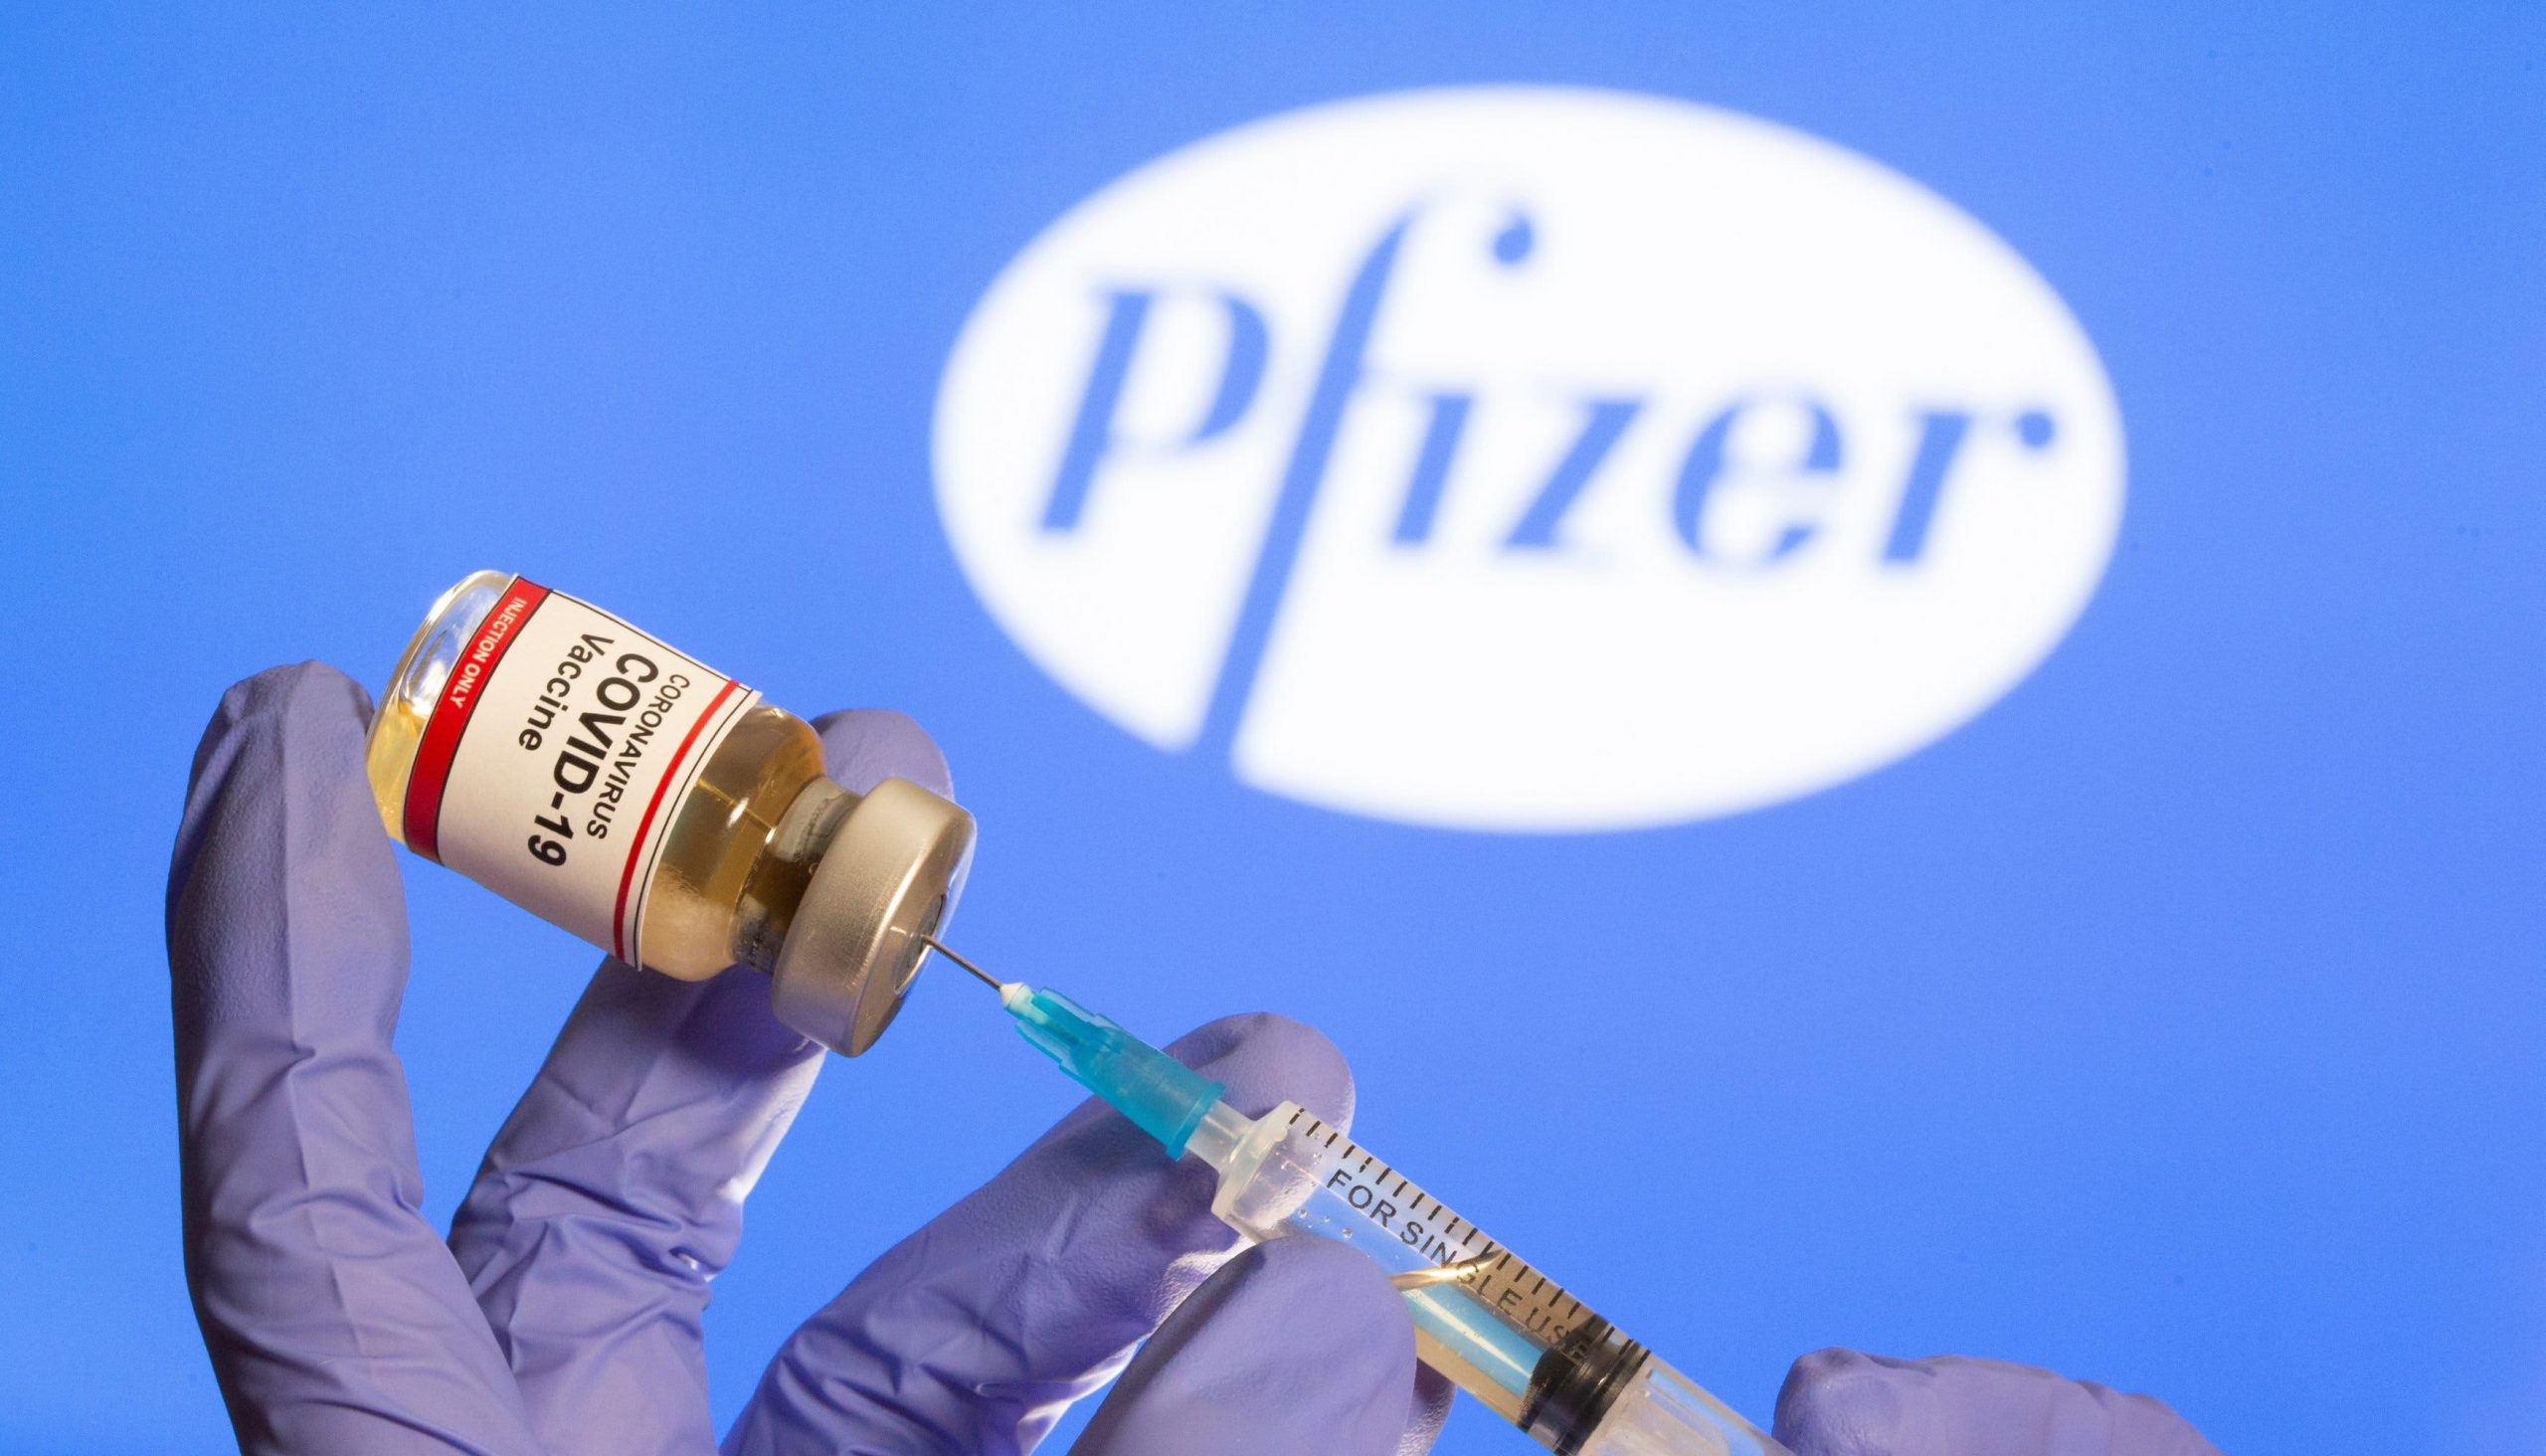 Pfizer's Covid vaccine authorized by FDA for emergency use